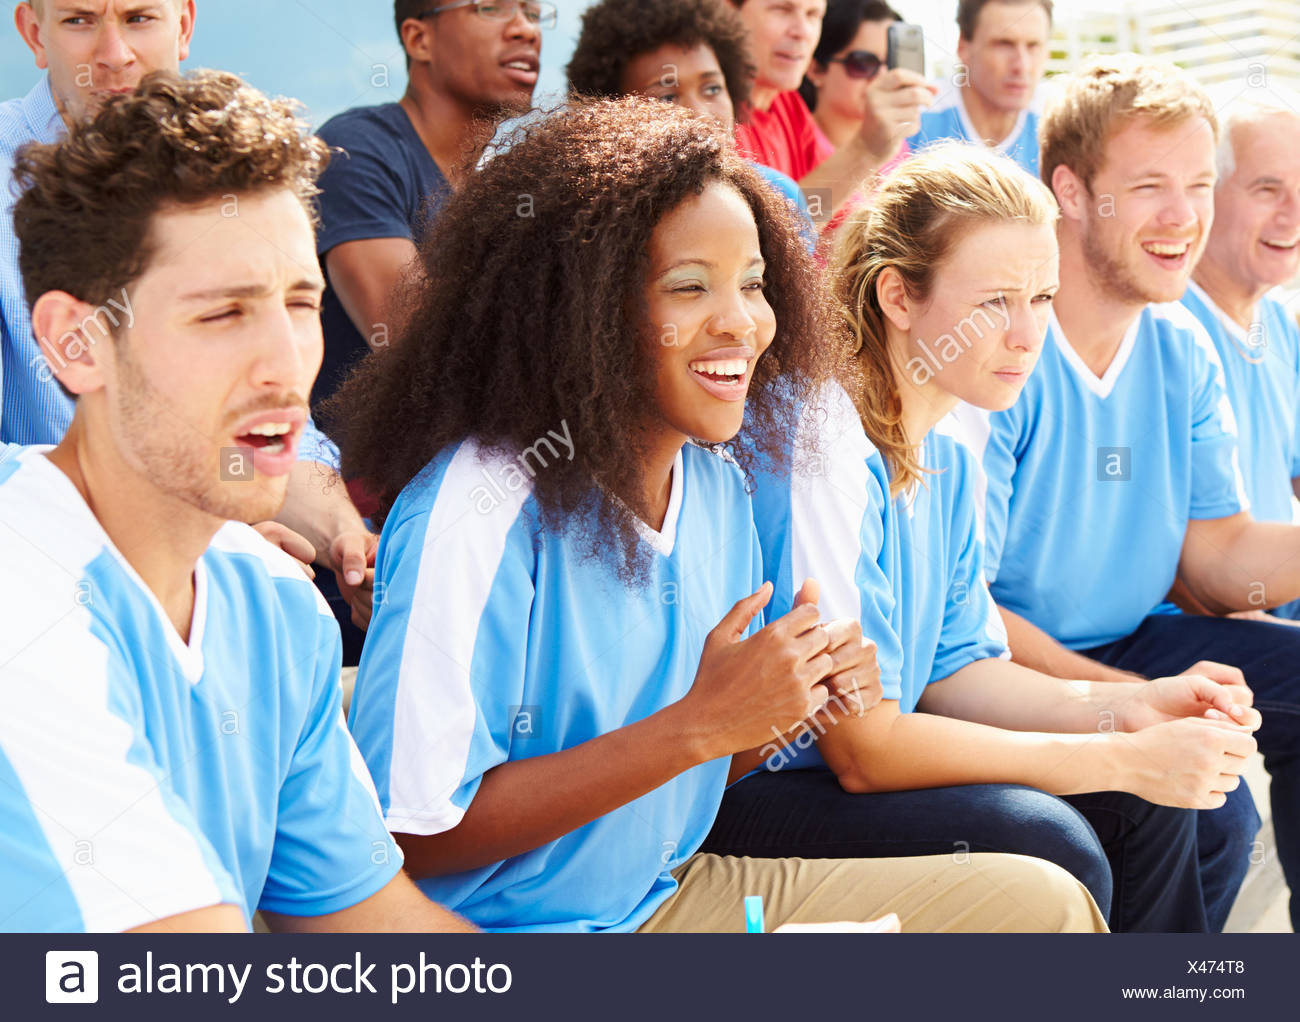 Spectators In Team Colors Watching Sports Event - Stock Image